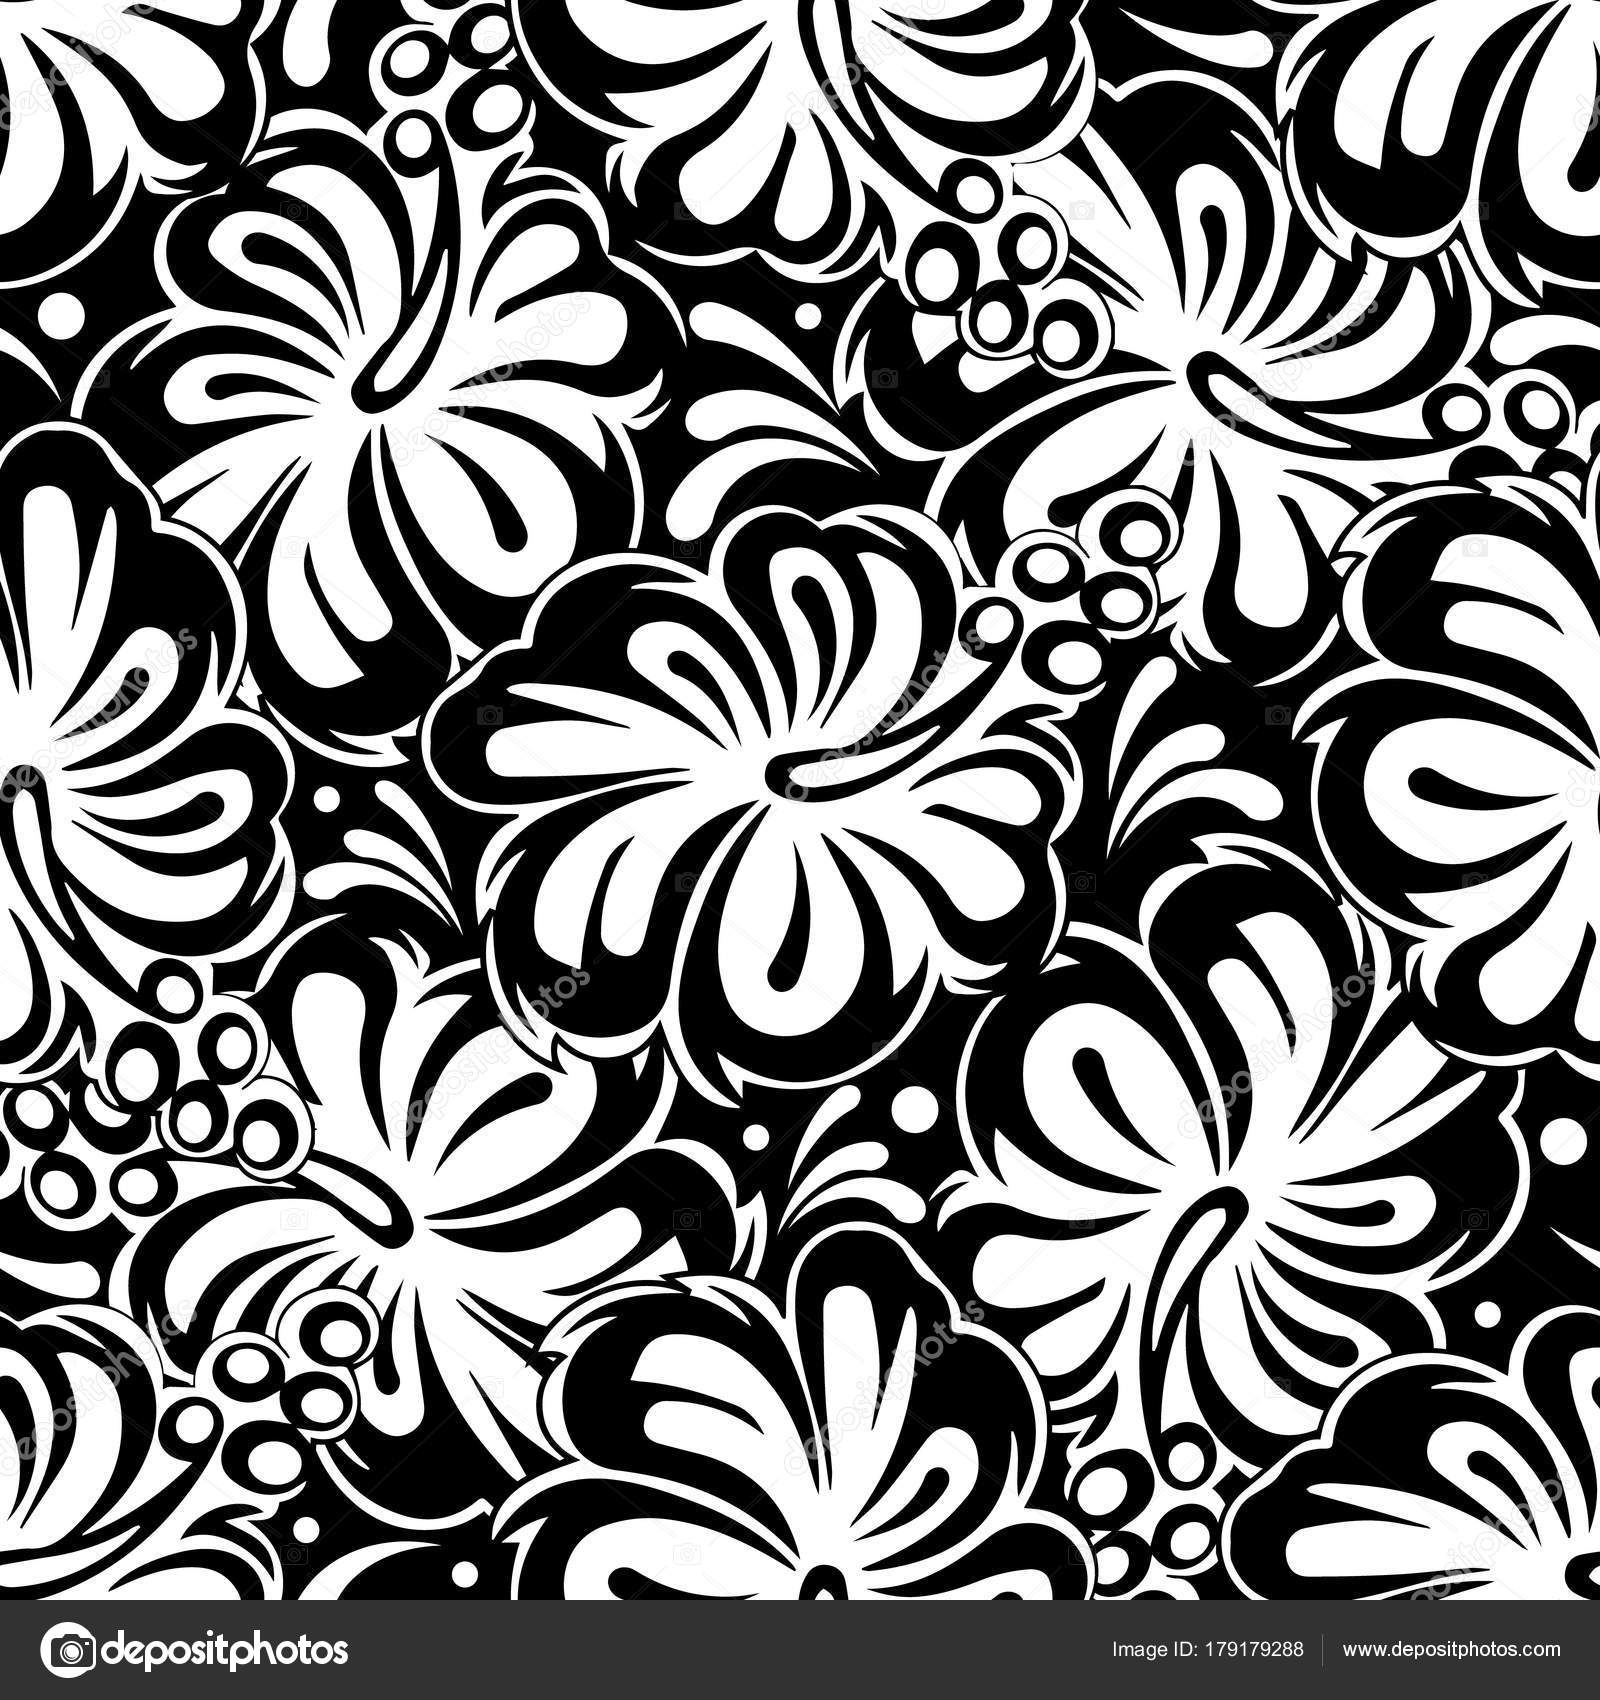 Floral Black And White Seamless Pattern Vector Isolated